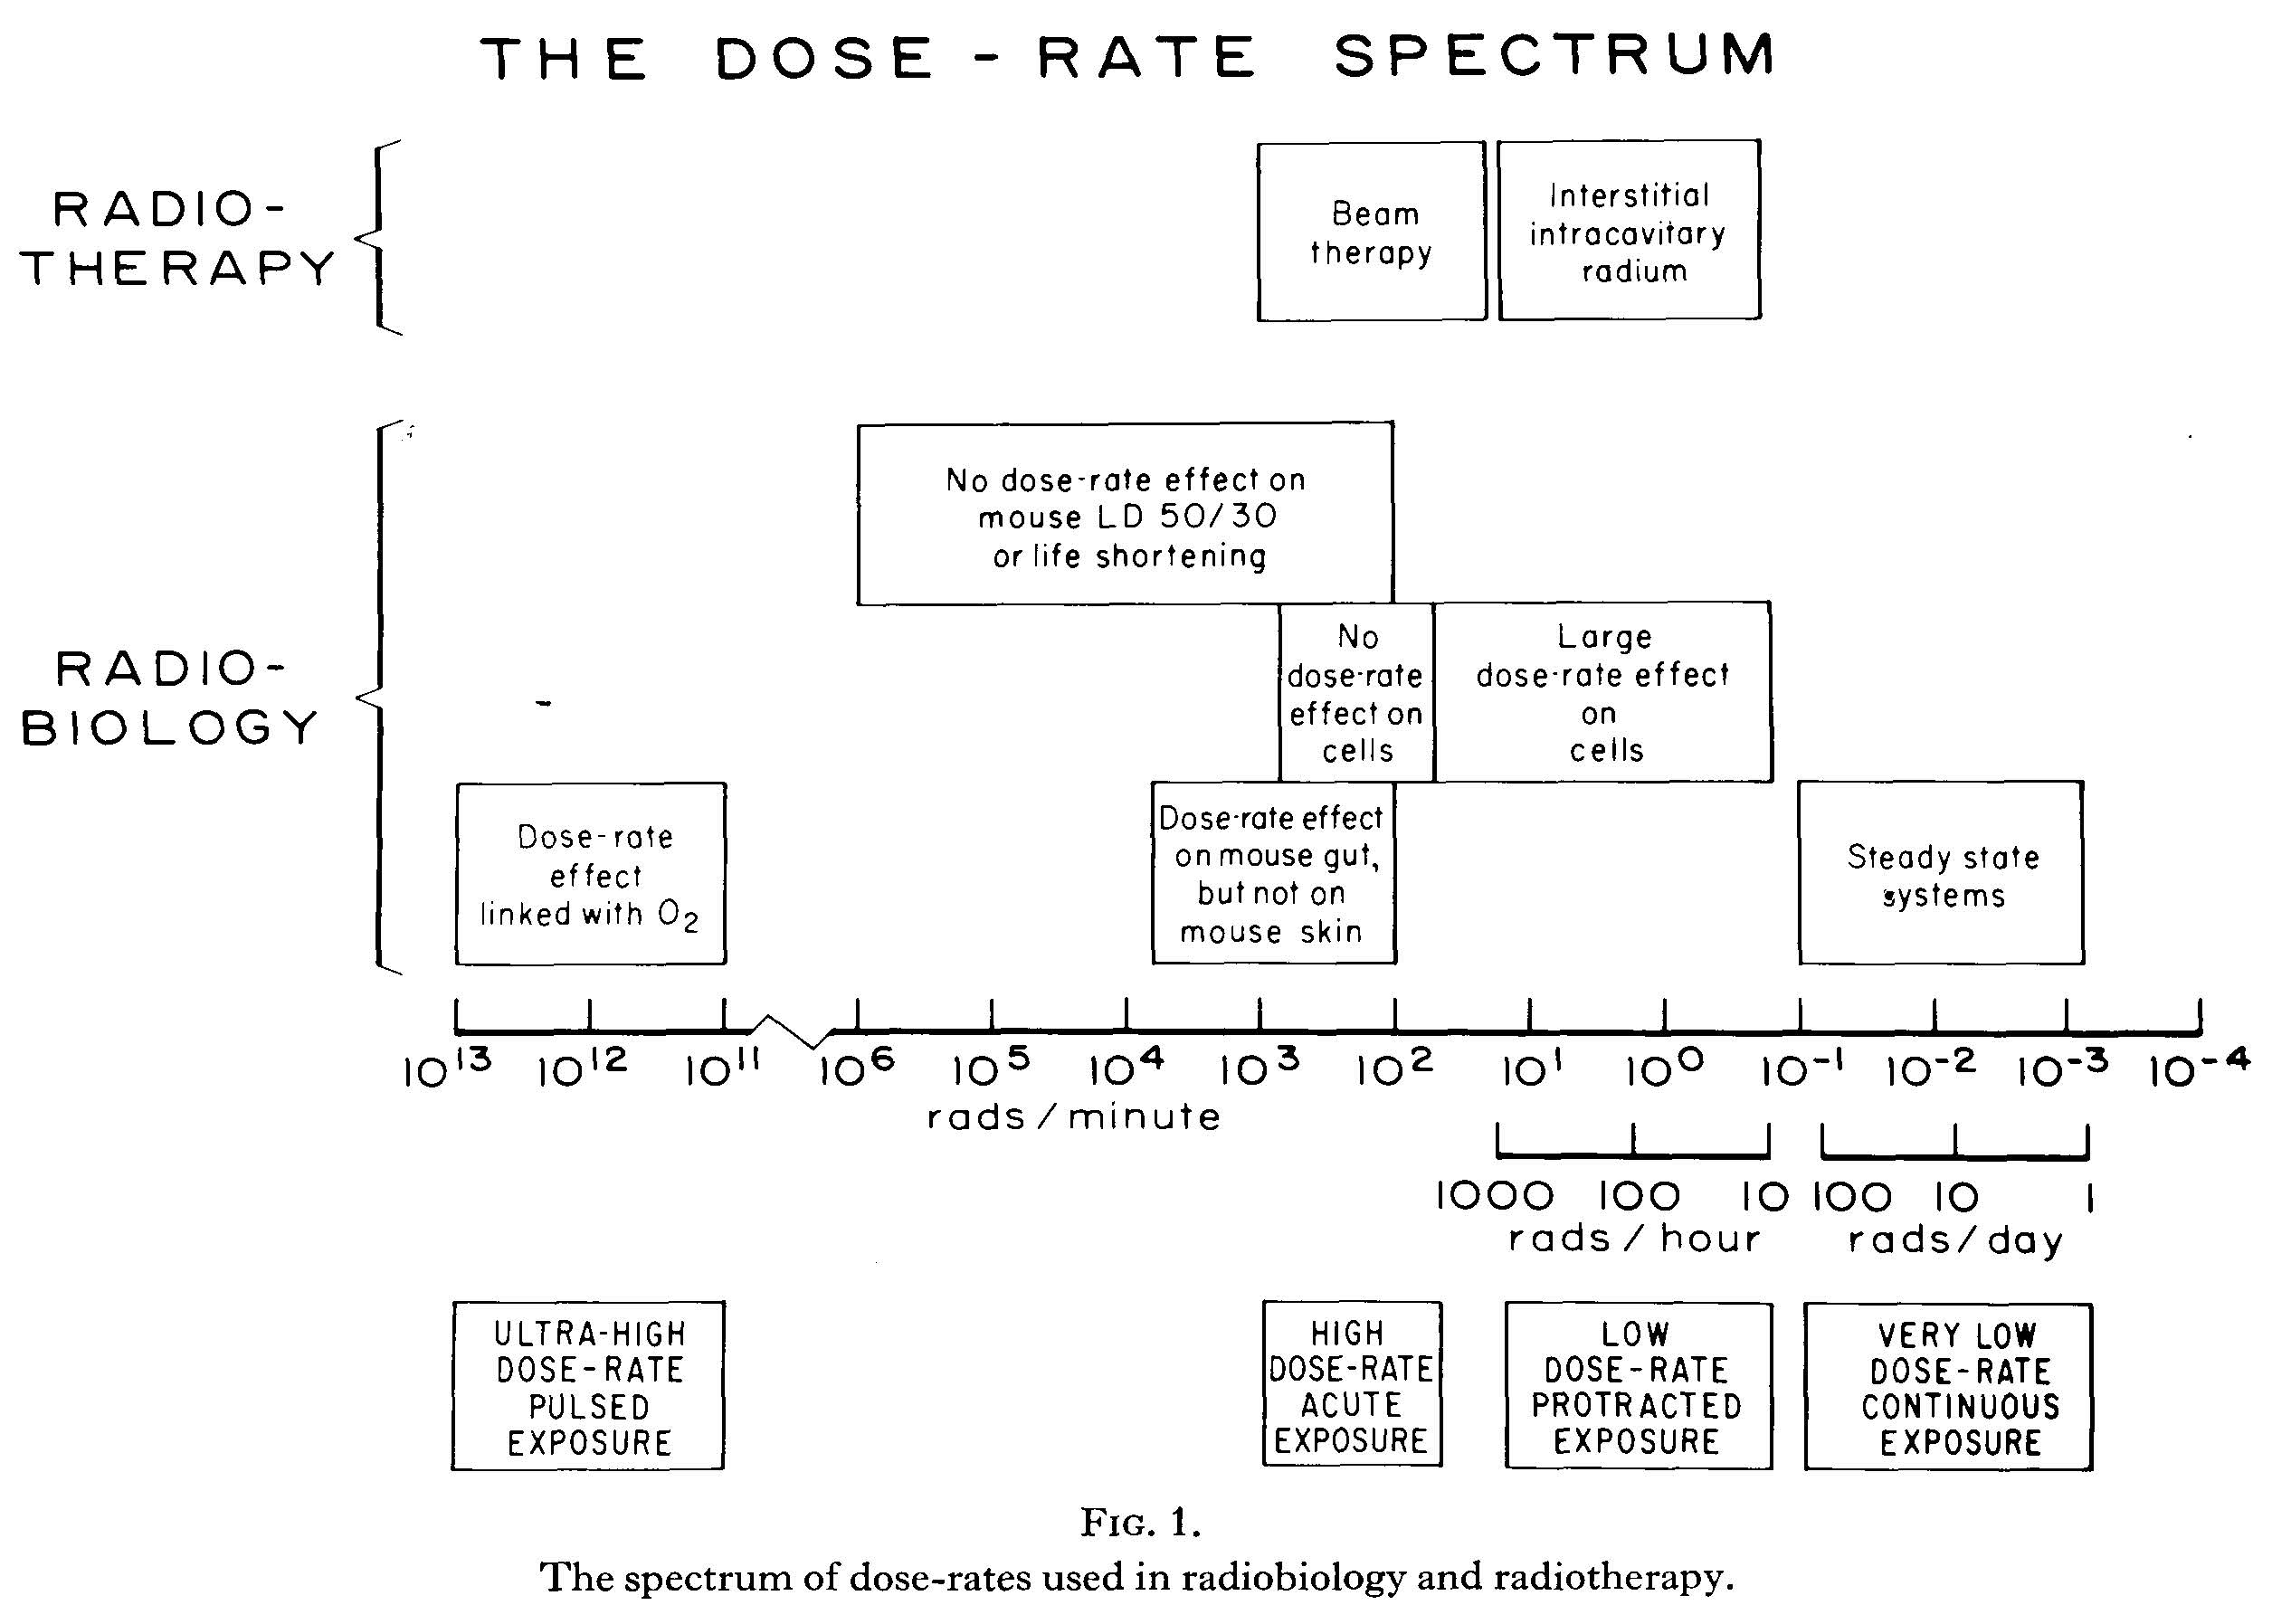 Dose-rate spectrum in radiotherapy and radiobiology